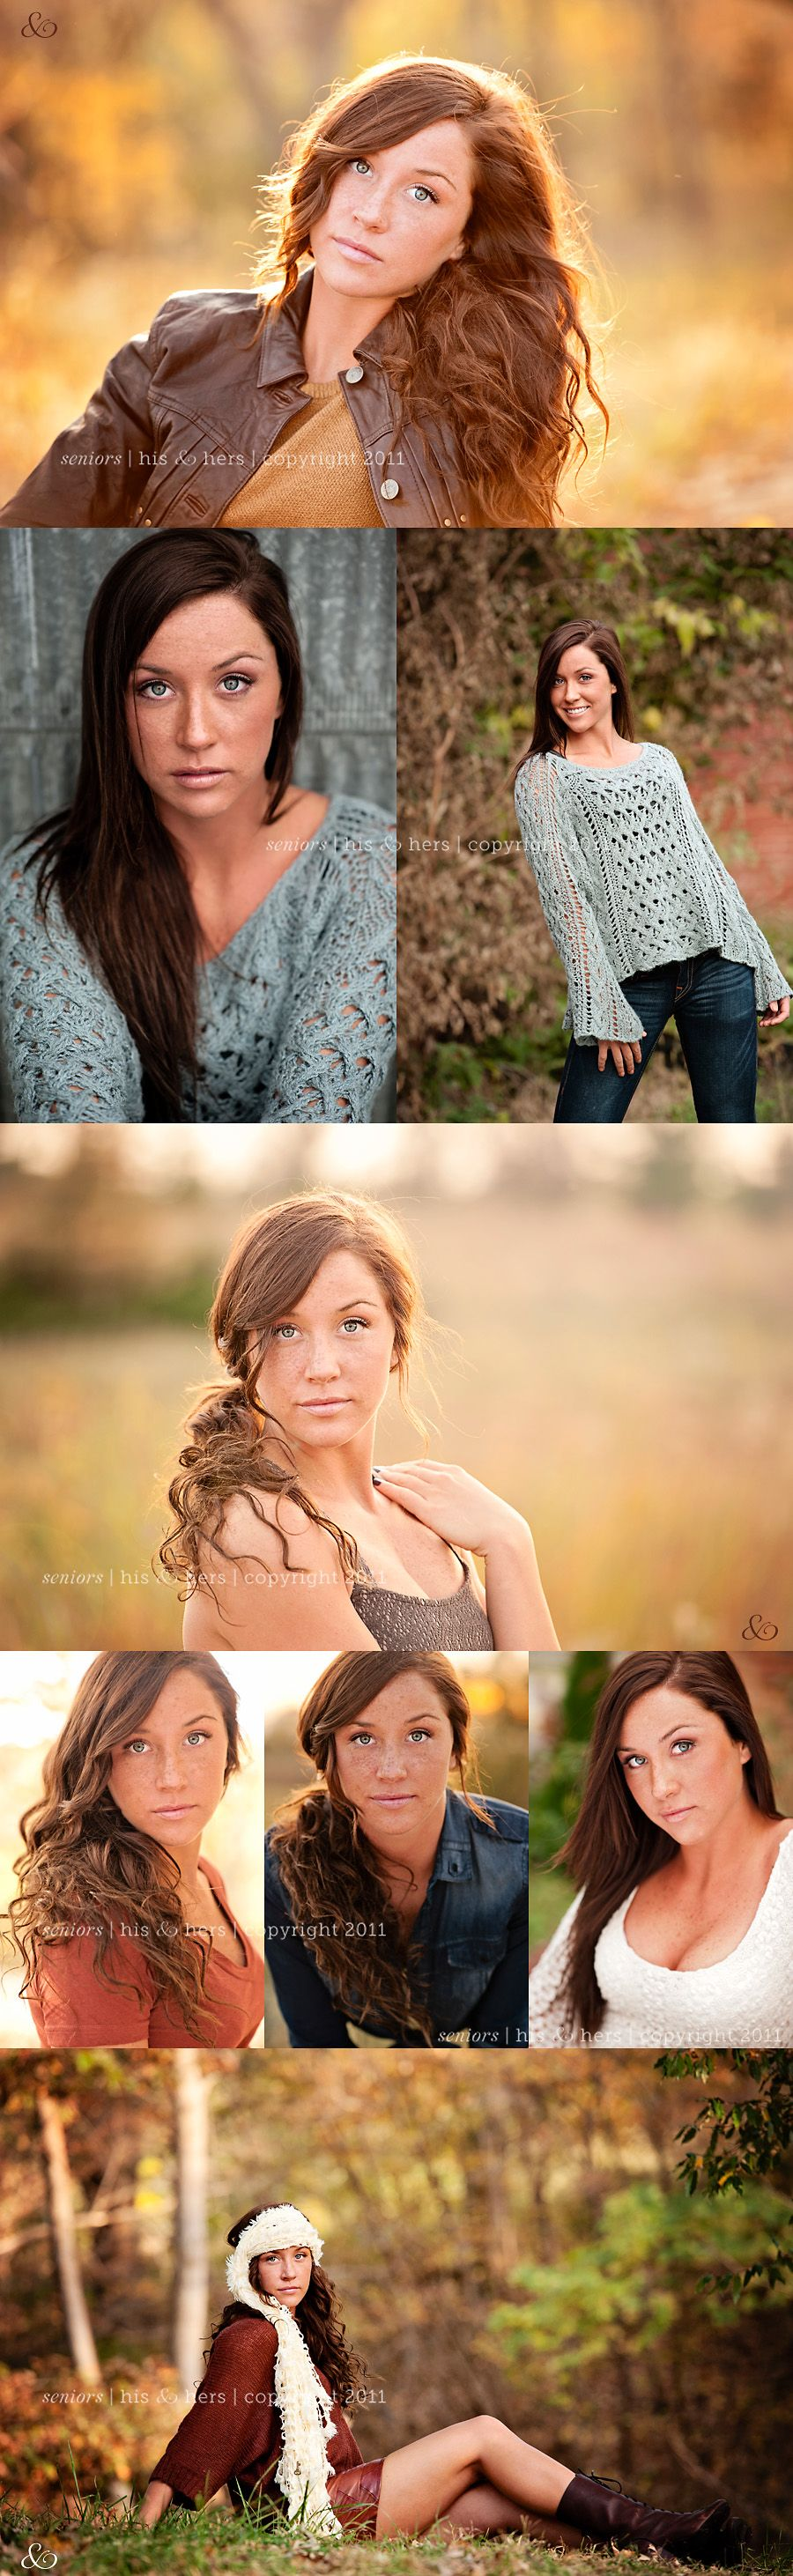 des moines iowa senior portraits senior pictures photographer